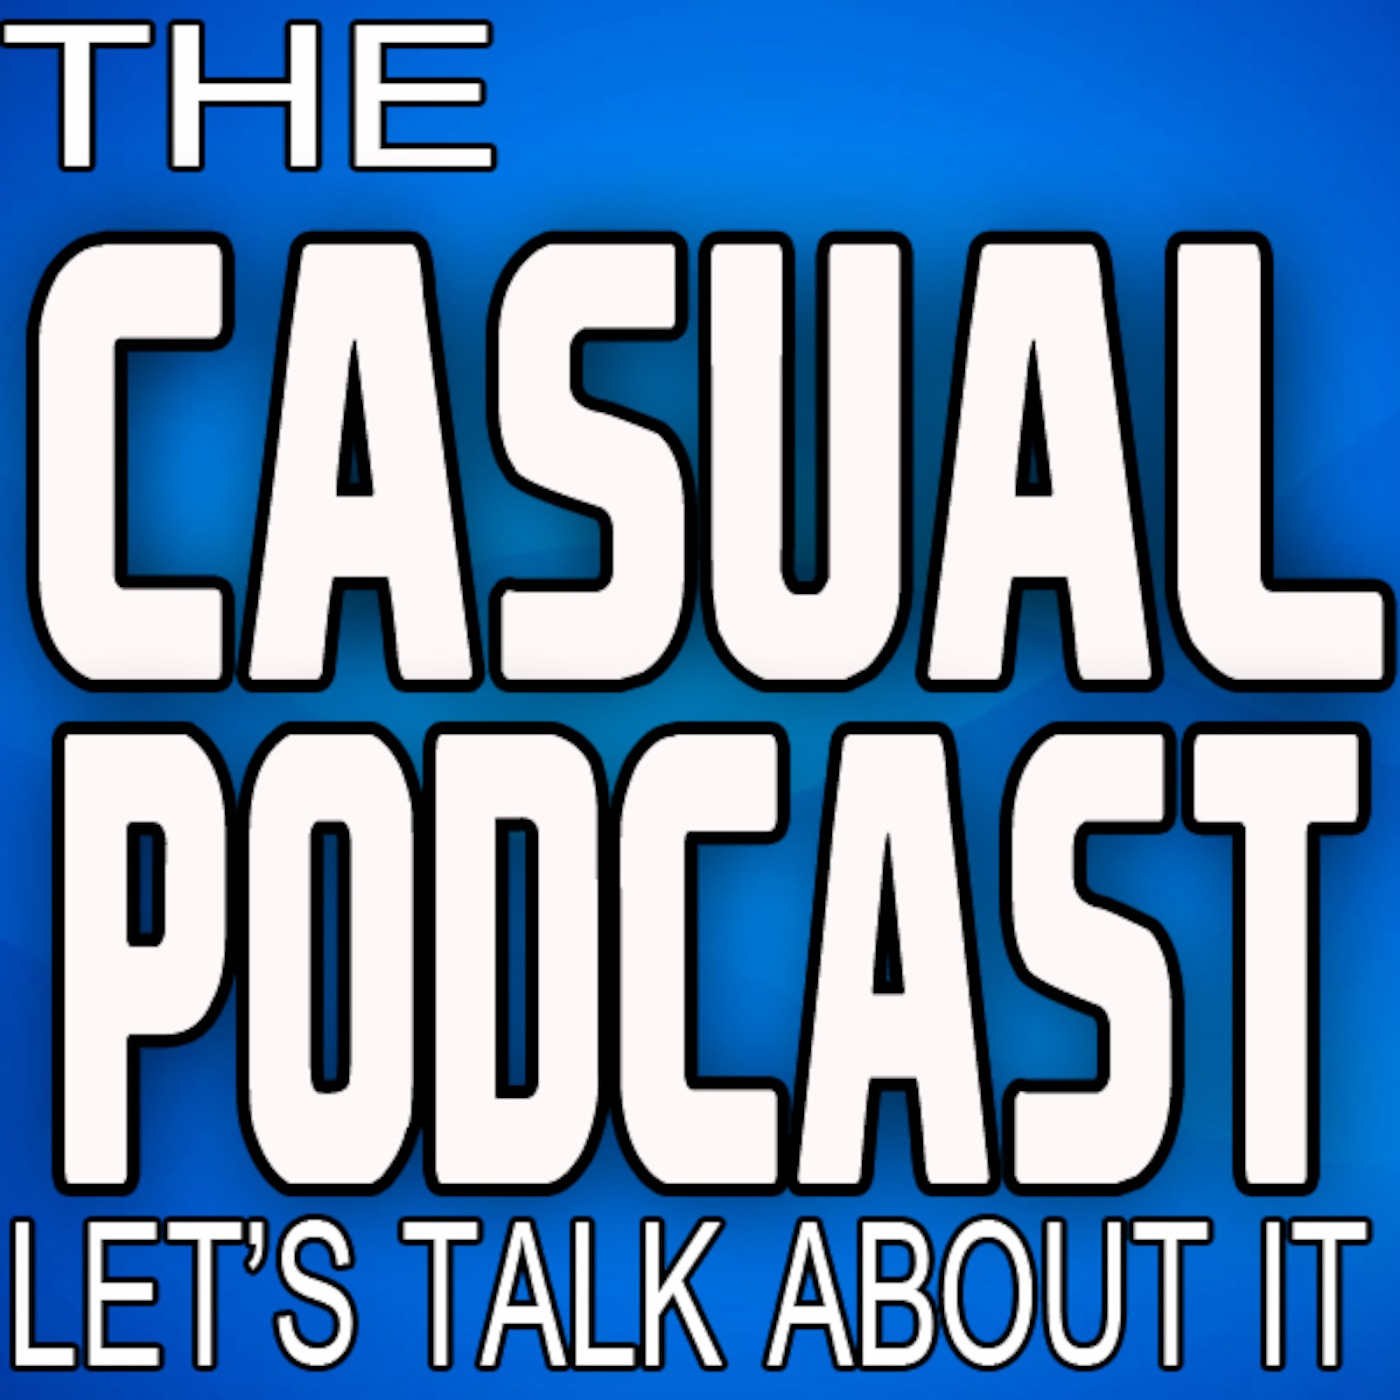 Casual Podcast